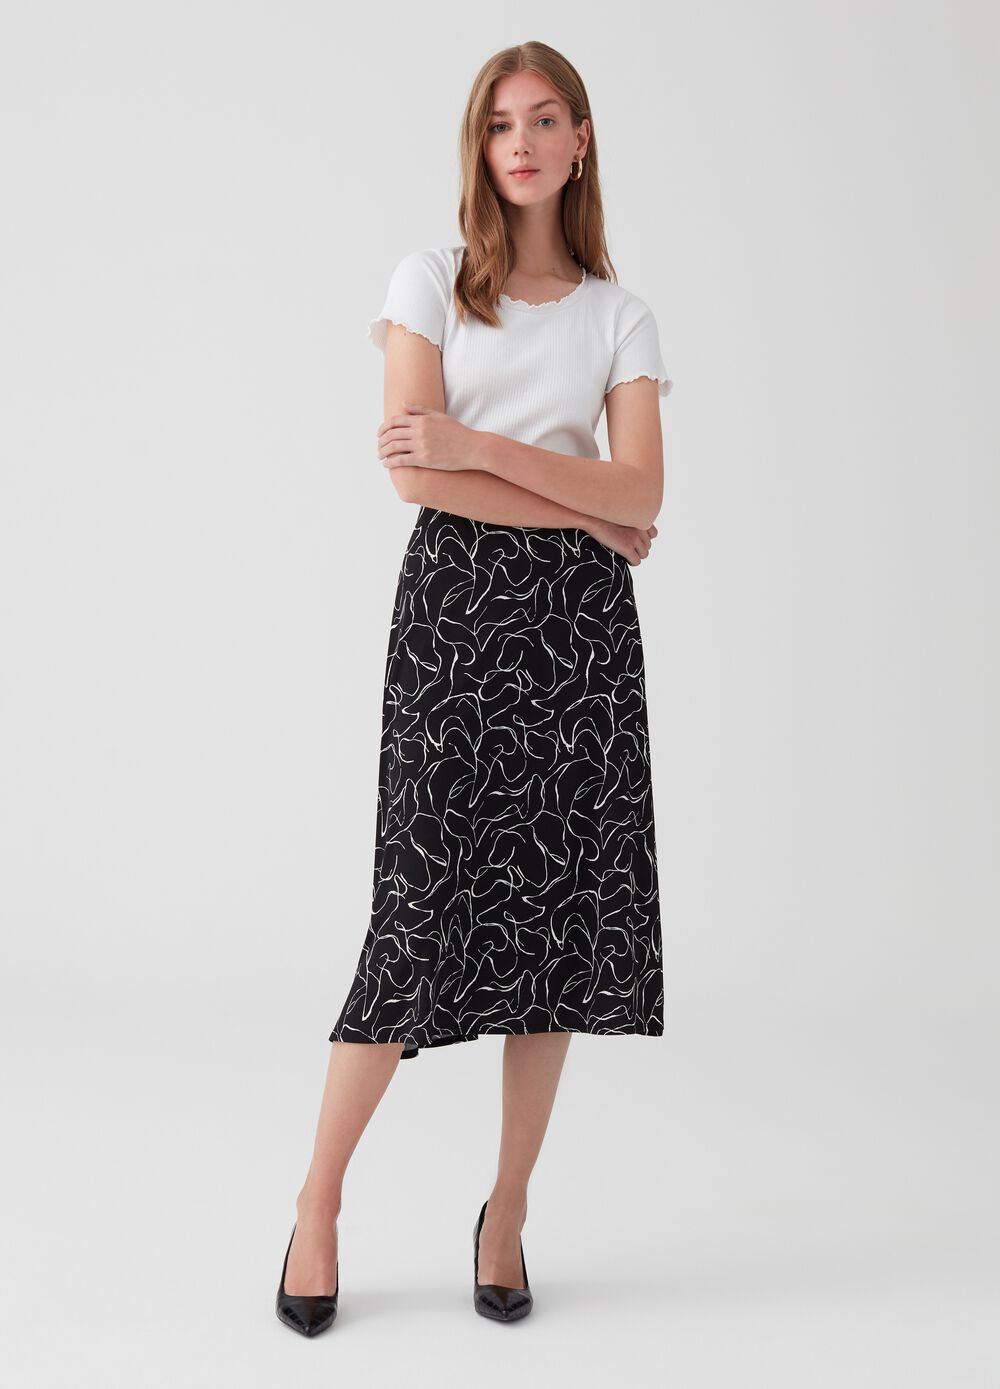 Patterned stretch skirt with geometric pattern